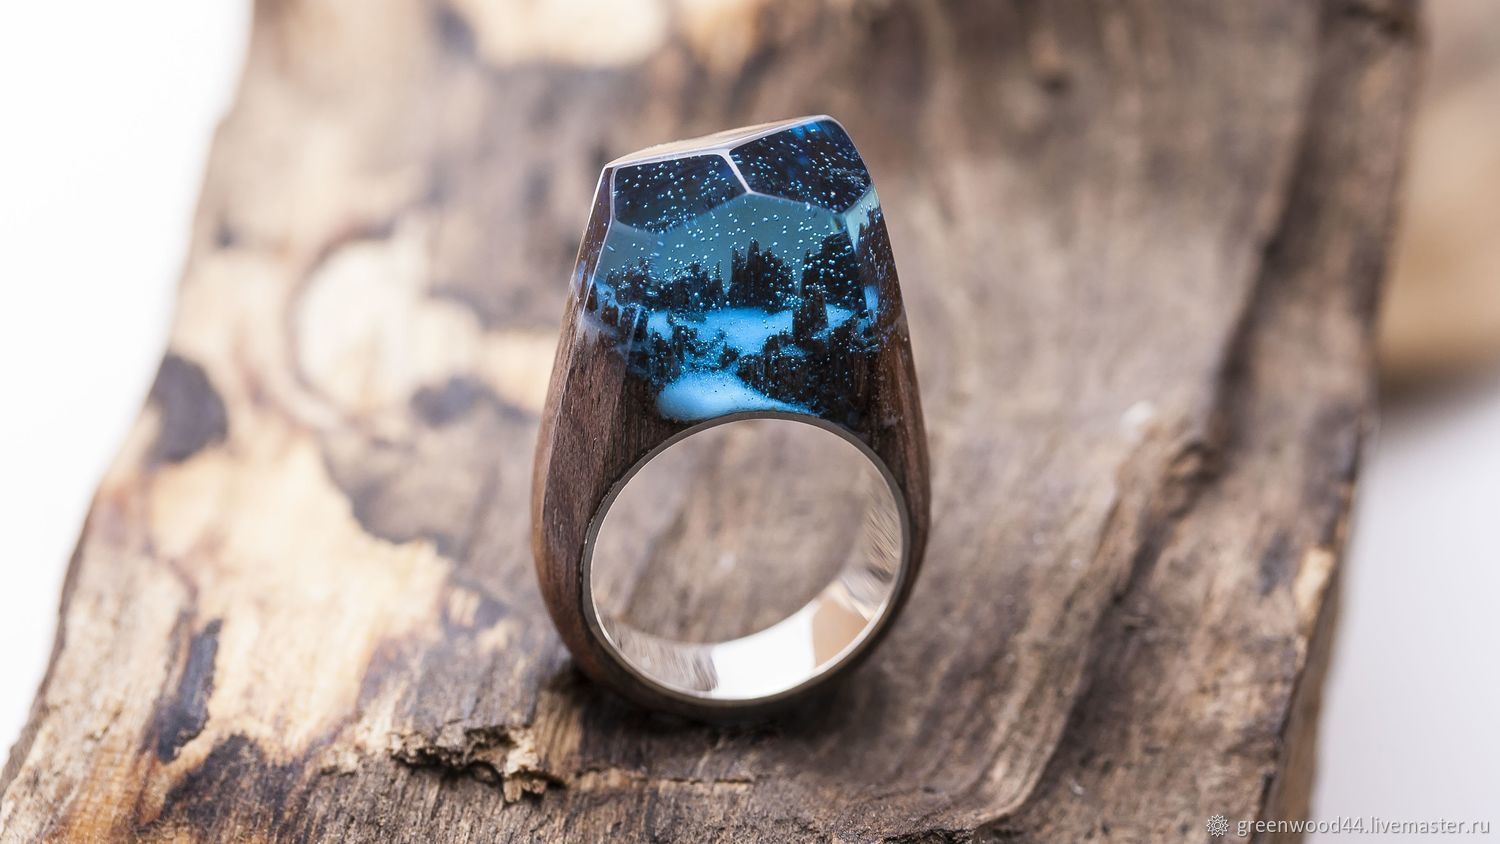 Wooden ring 'Winterfell' Silver, Rings, Kostroma,  Фото №1